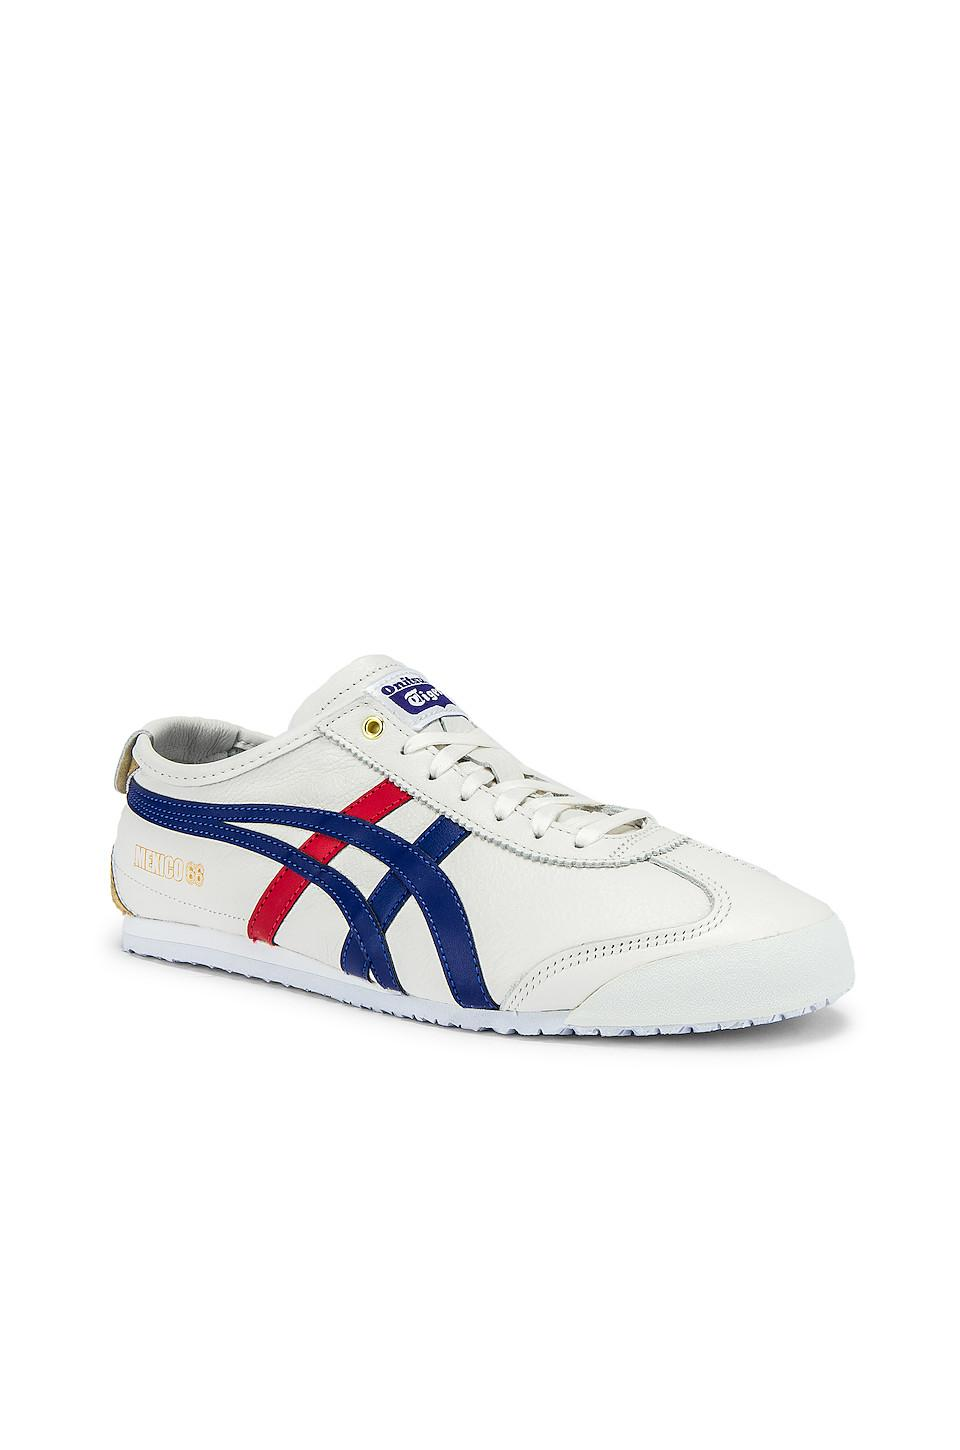 on sale c8bad e64f1 Onitsuka Tiger Mexico 66 in White for Men - Lyst